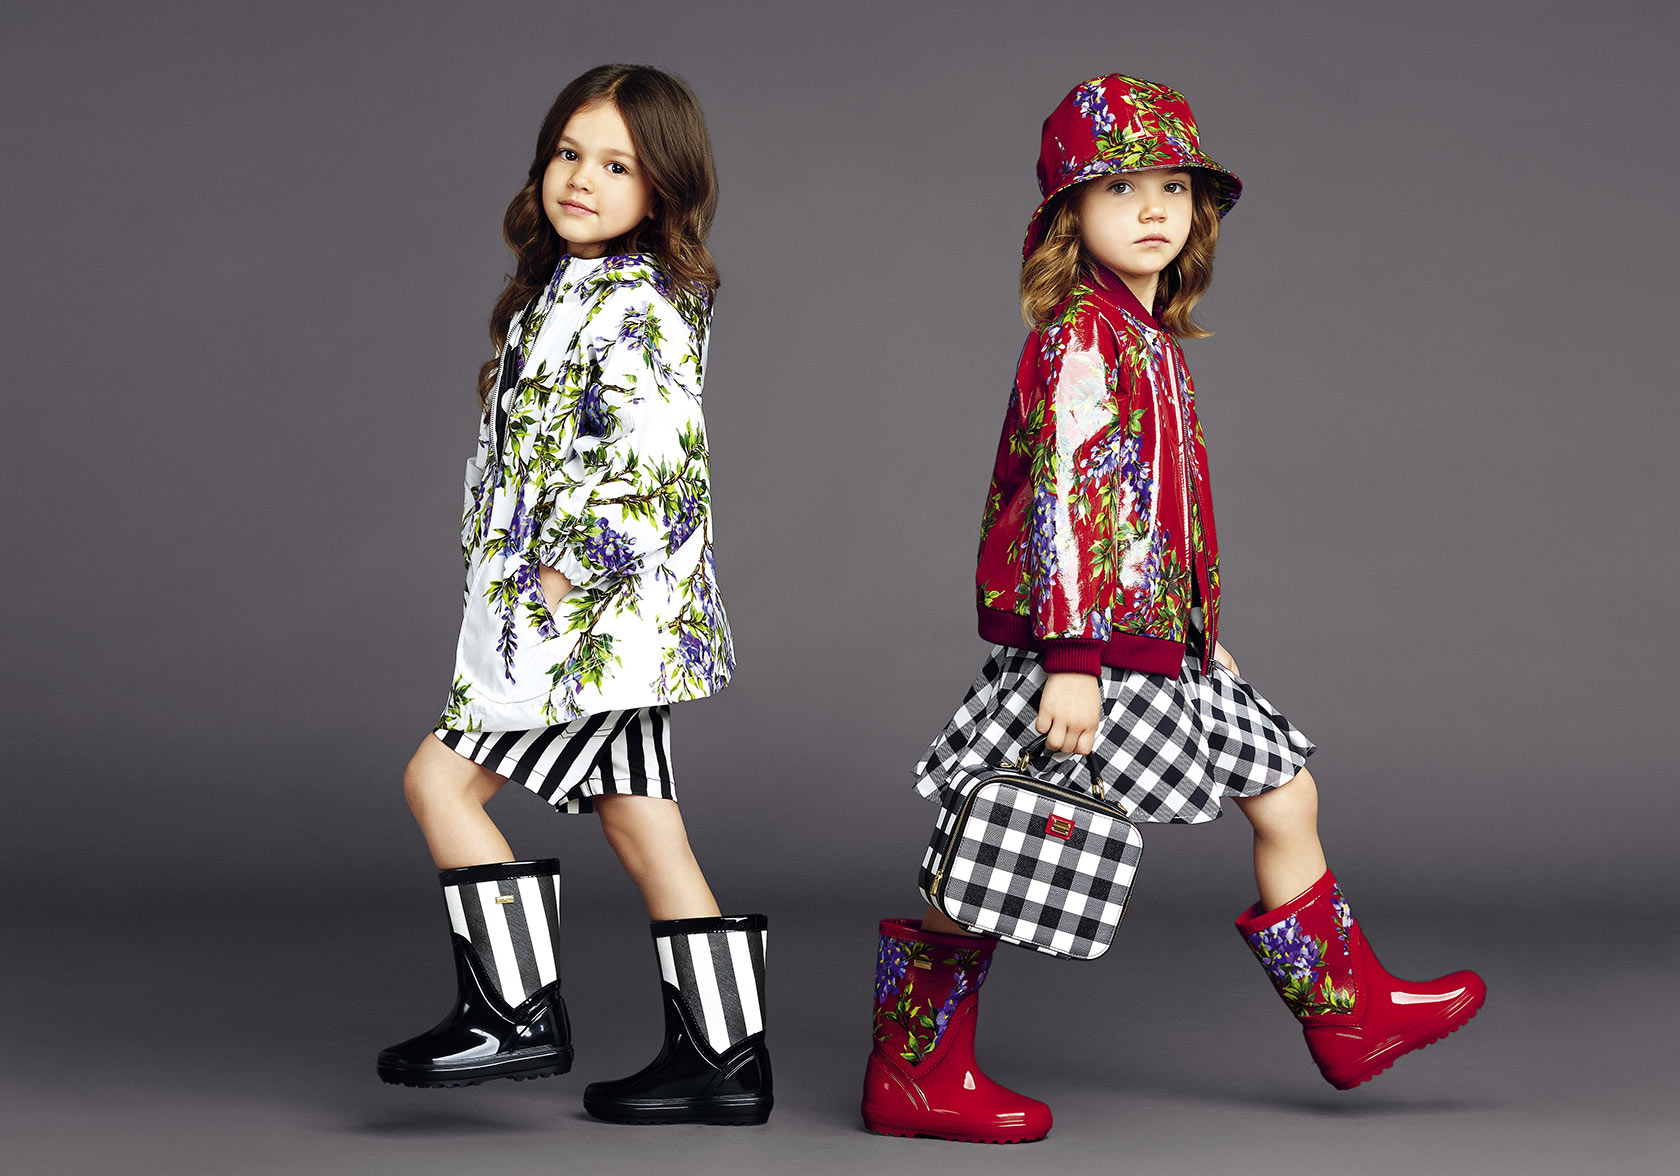 dolce-and-gabbana-summer-2015-child-collection-23-zoom.jpg